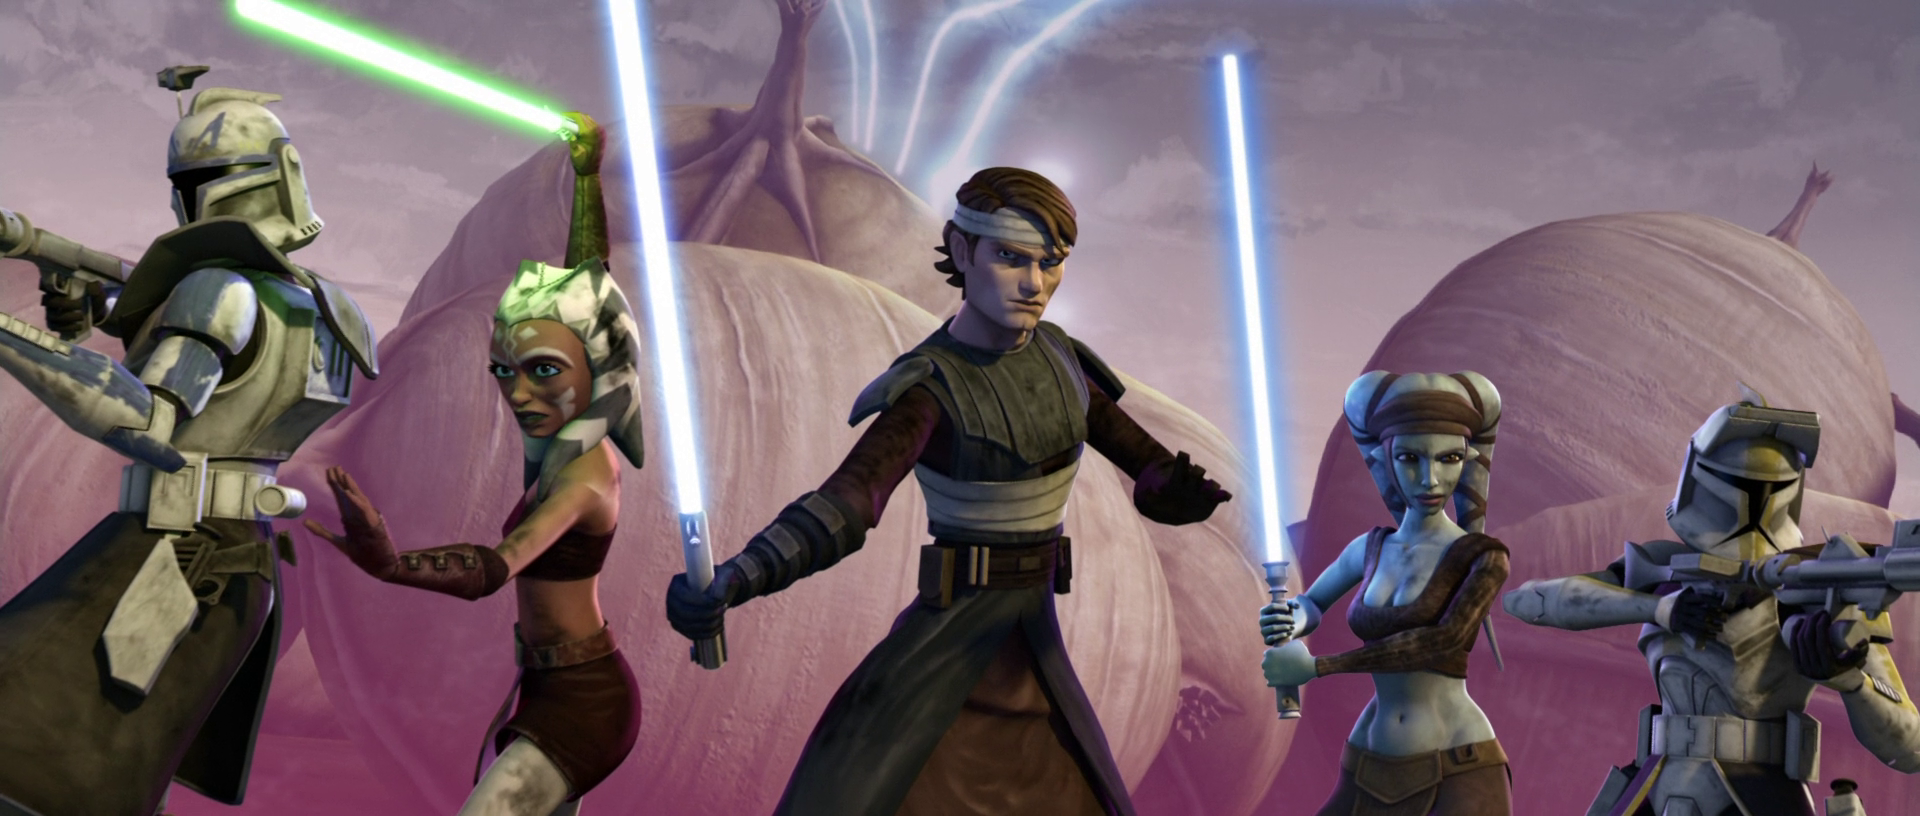 star wars rebels stirbt asoka